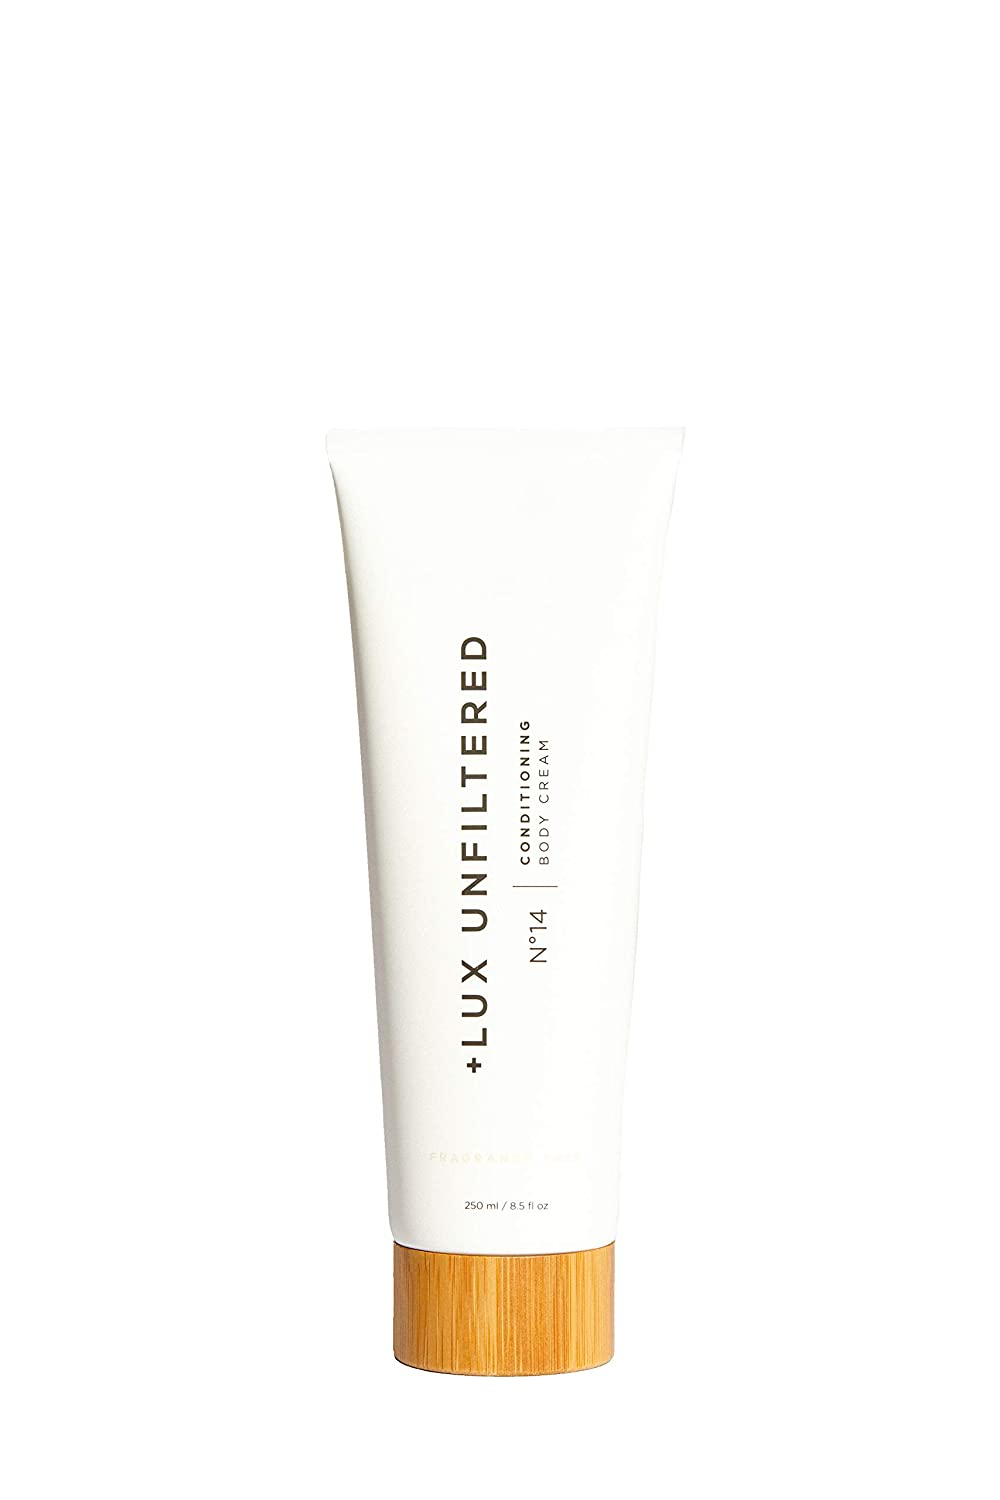 + Lux Unfiltered No 14 Conditioning Free San Jose Mall Fragrance Cream Ranking TOP13 Body